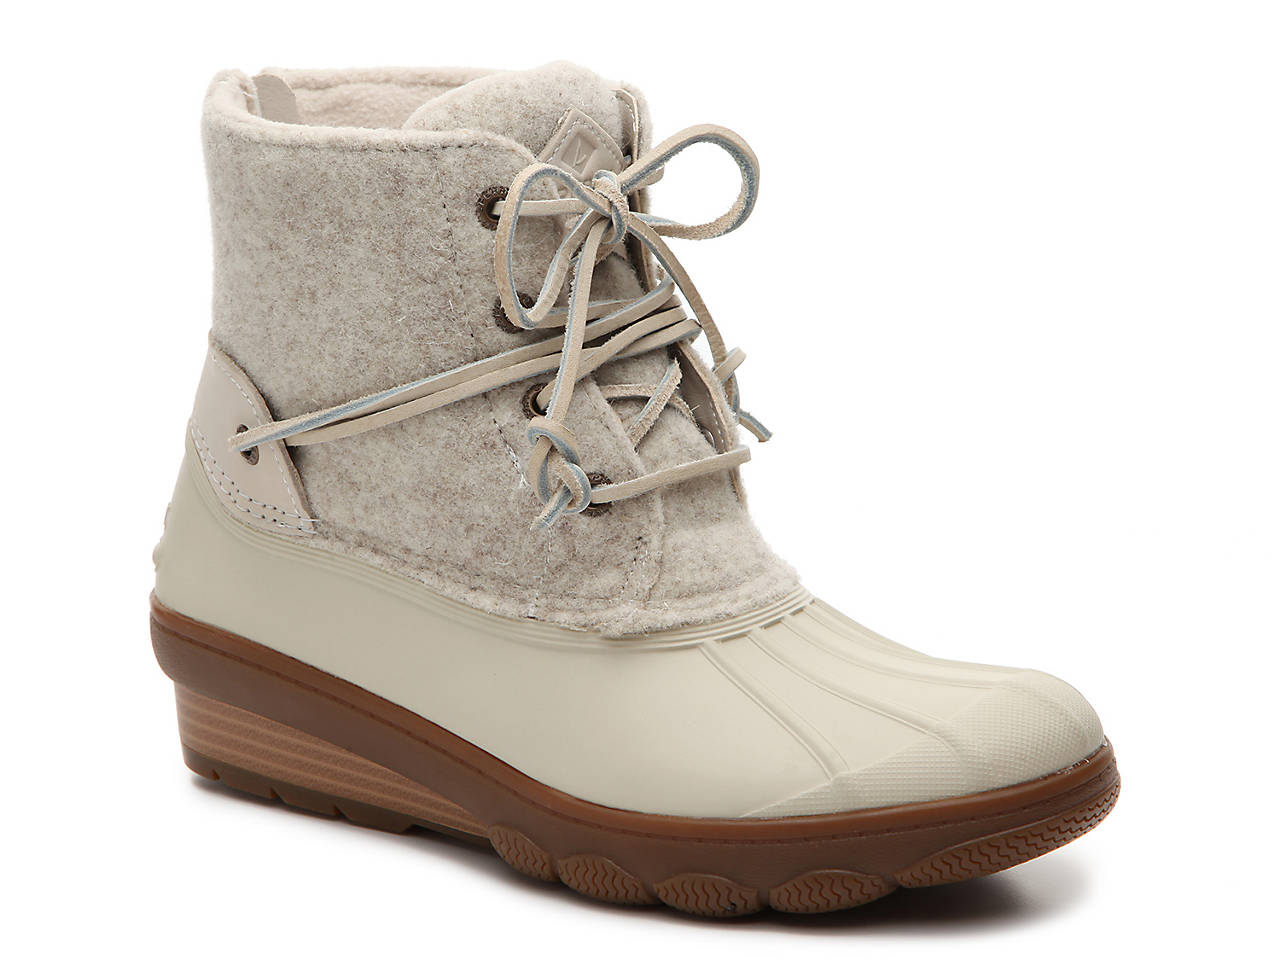 77d12dcf273d Sperry Top-Sider Saltwater Tide Wedge Duck Boot Women s Shoes